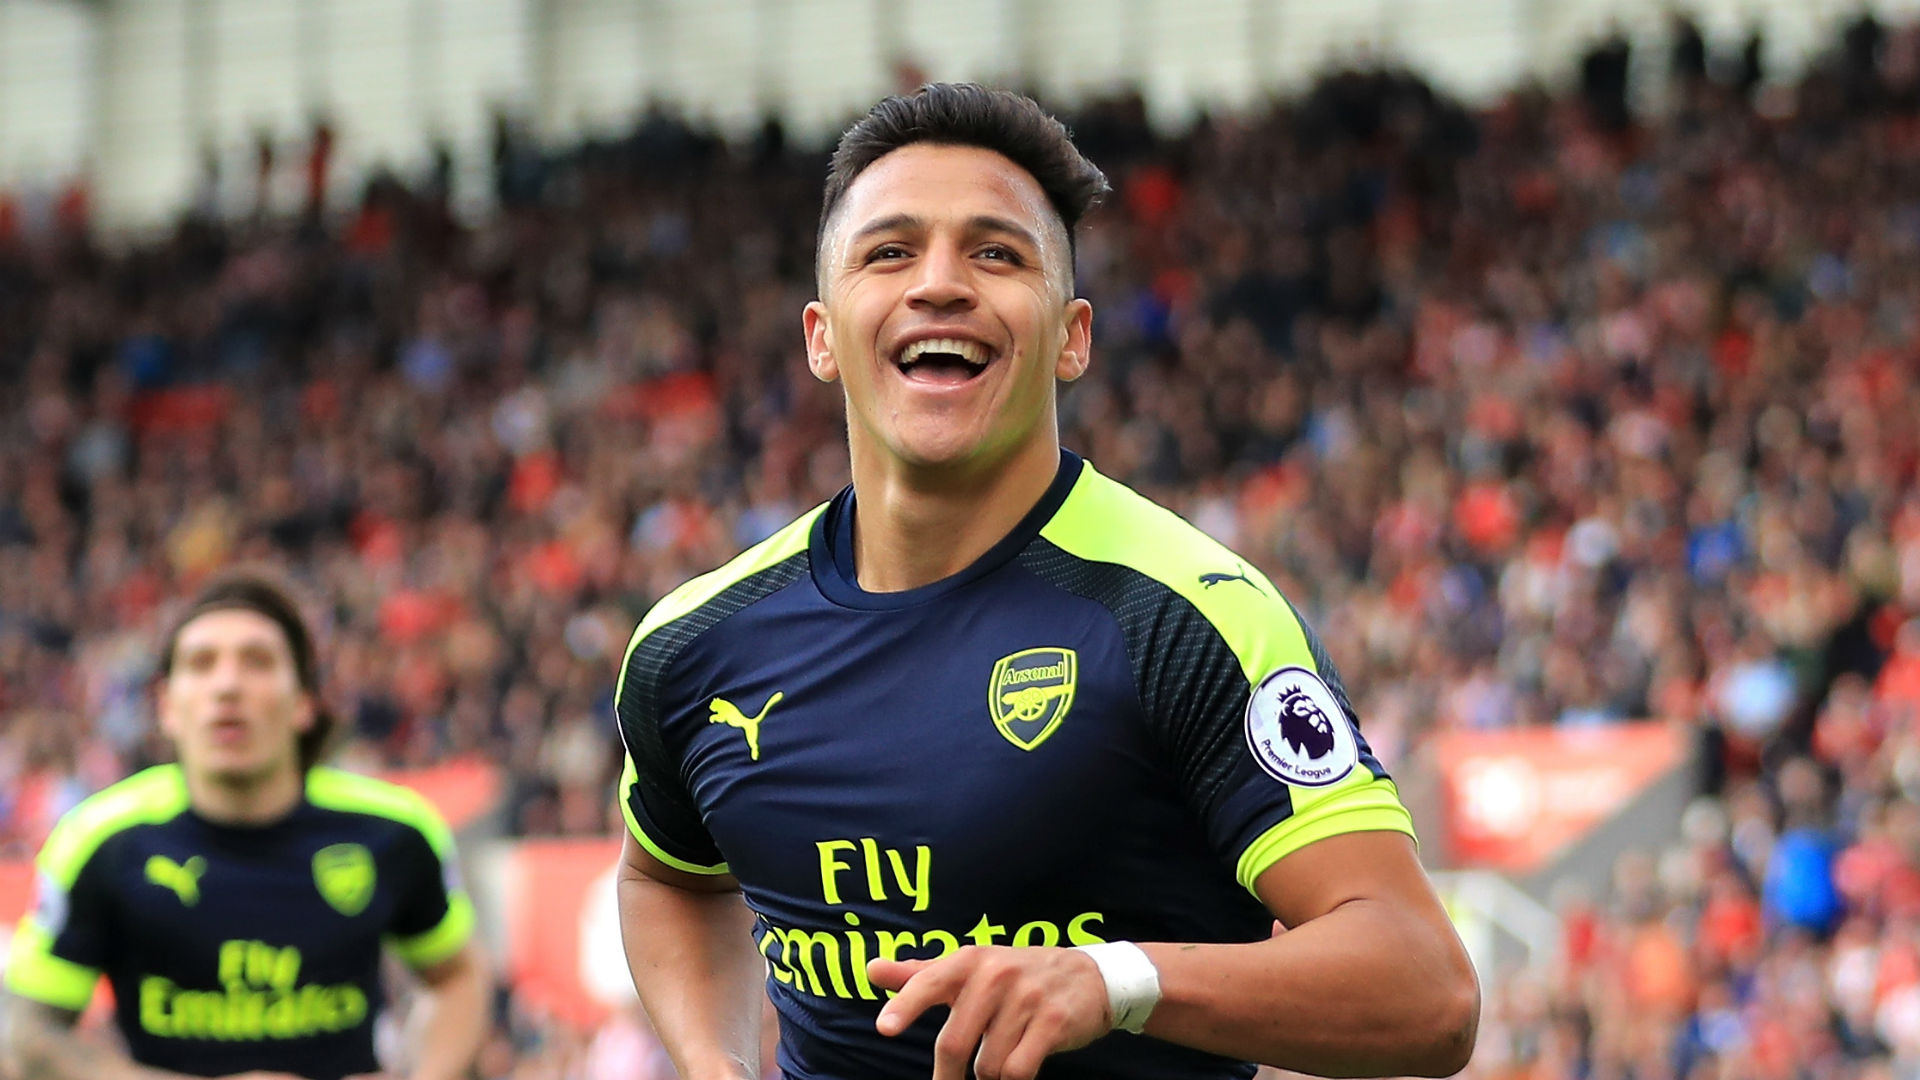 Arsenal players keen on Sanchez stay: Koscielny